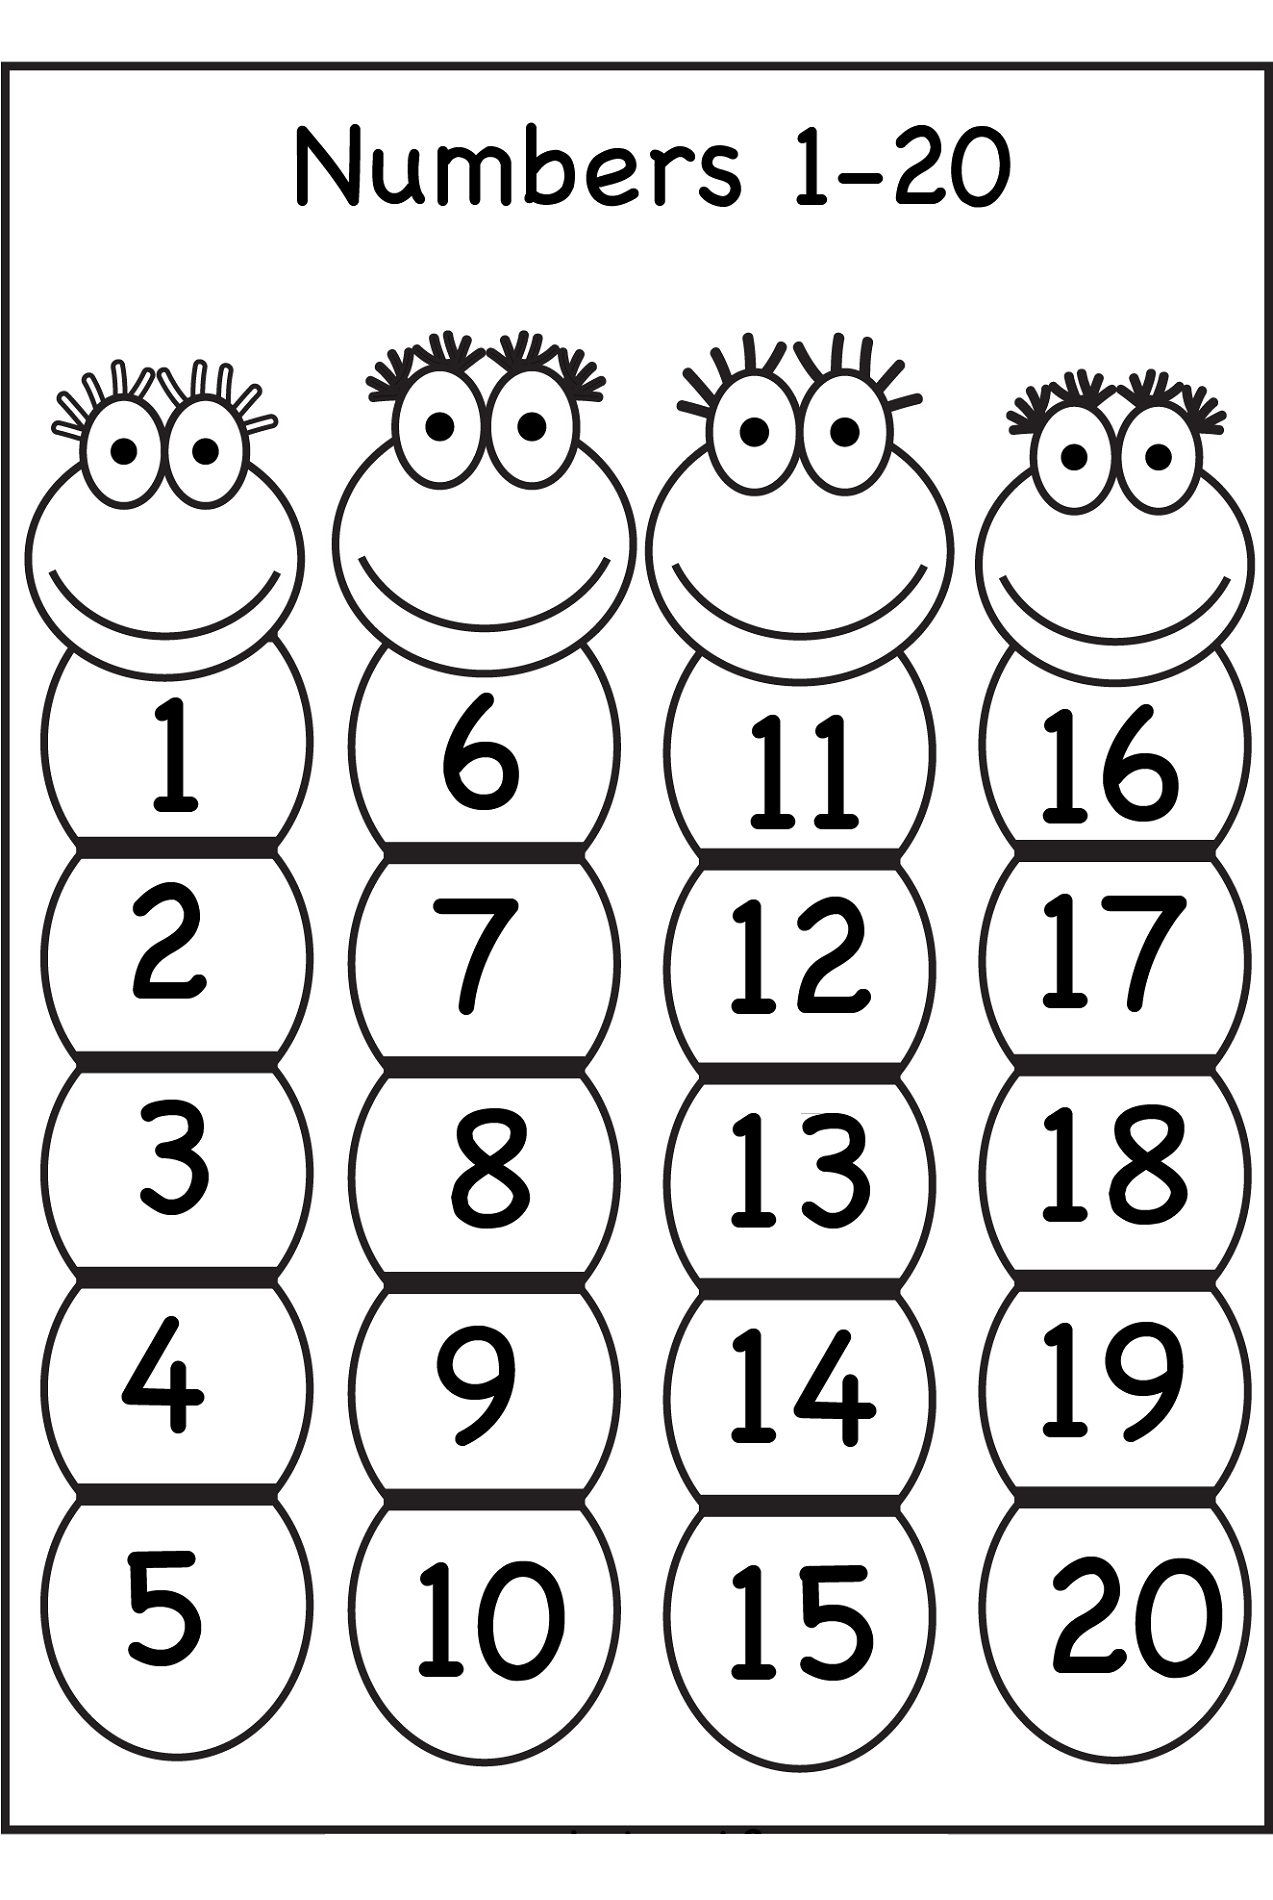 Printable Number 20 Worksheets